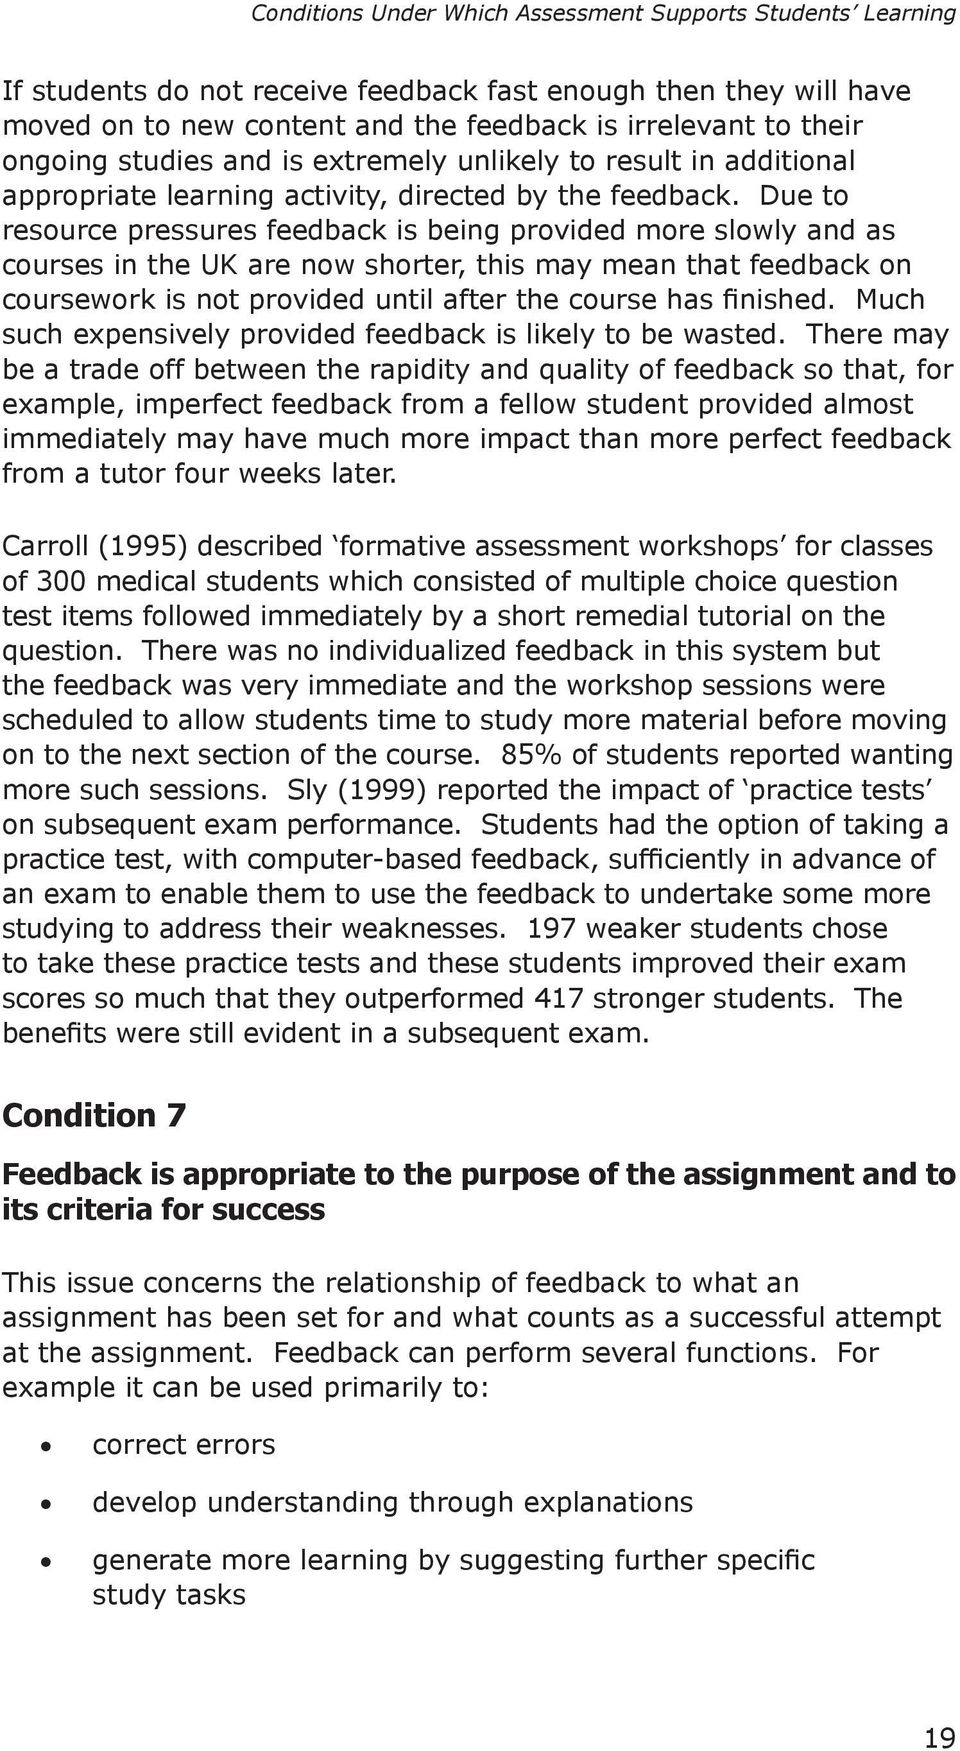 Due to resource pressures feedback is being provided more slowly and as courses in the UK are now shorter, this may mean that feedback on coursework is not provided until after the course has